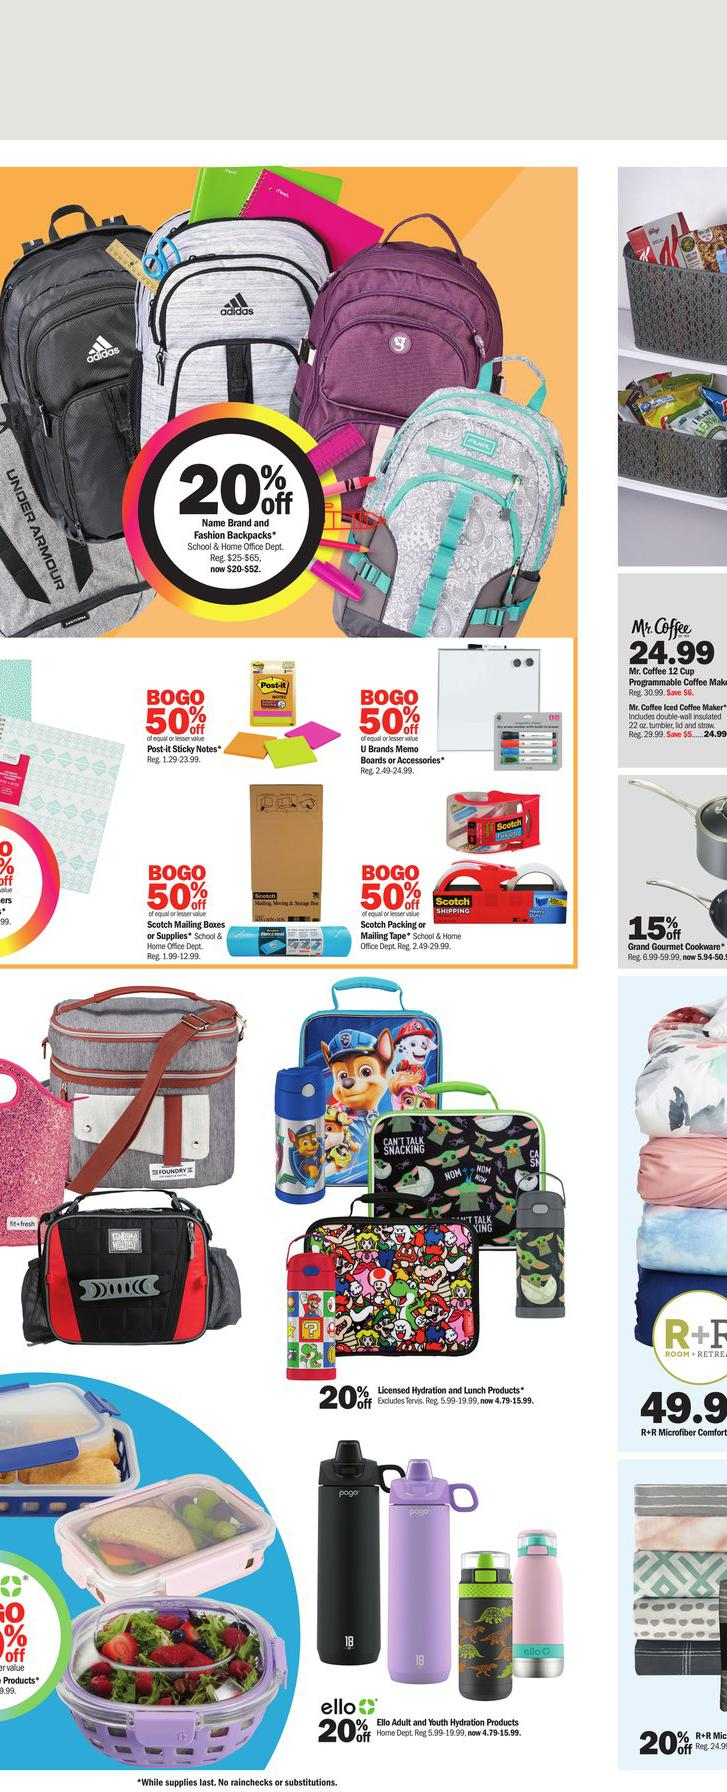 01.08.2021 Meijer ad 25. page